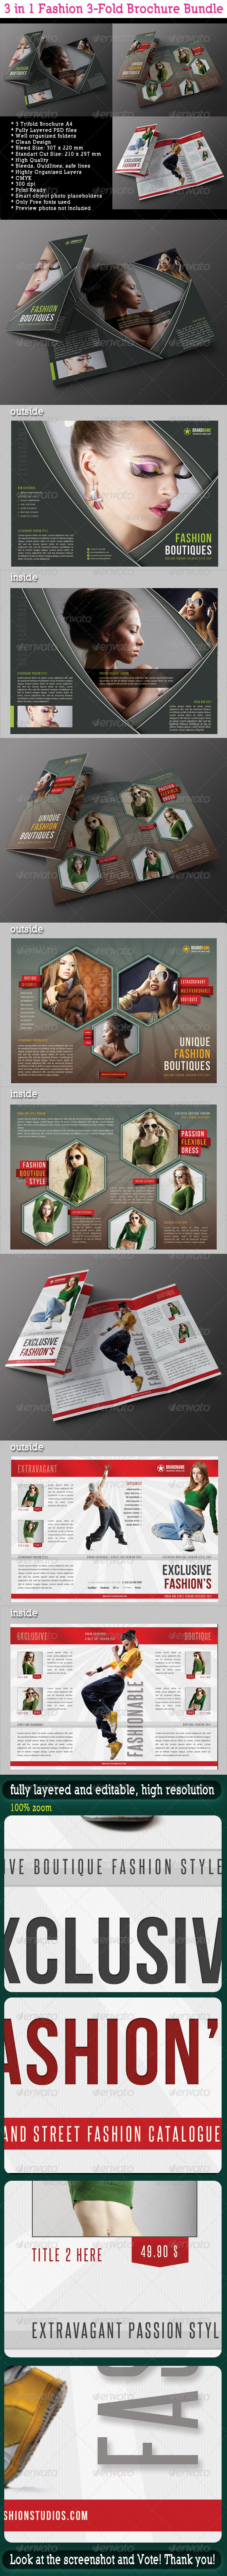 3 in 1 Fashion 3-Fold Brochure Bundle 05 - Catalogs Brochures